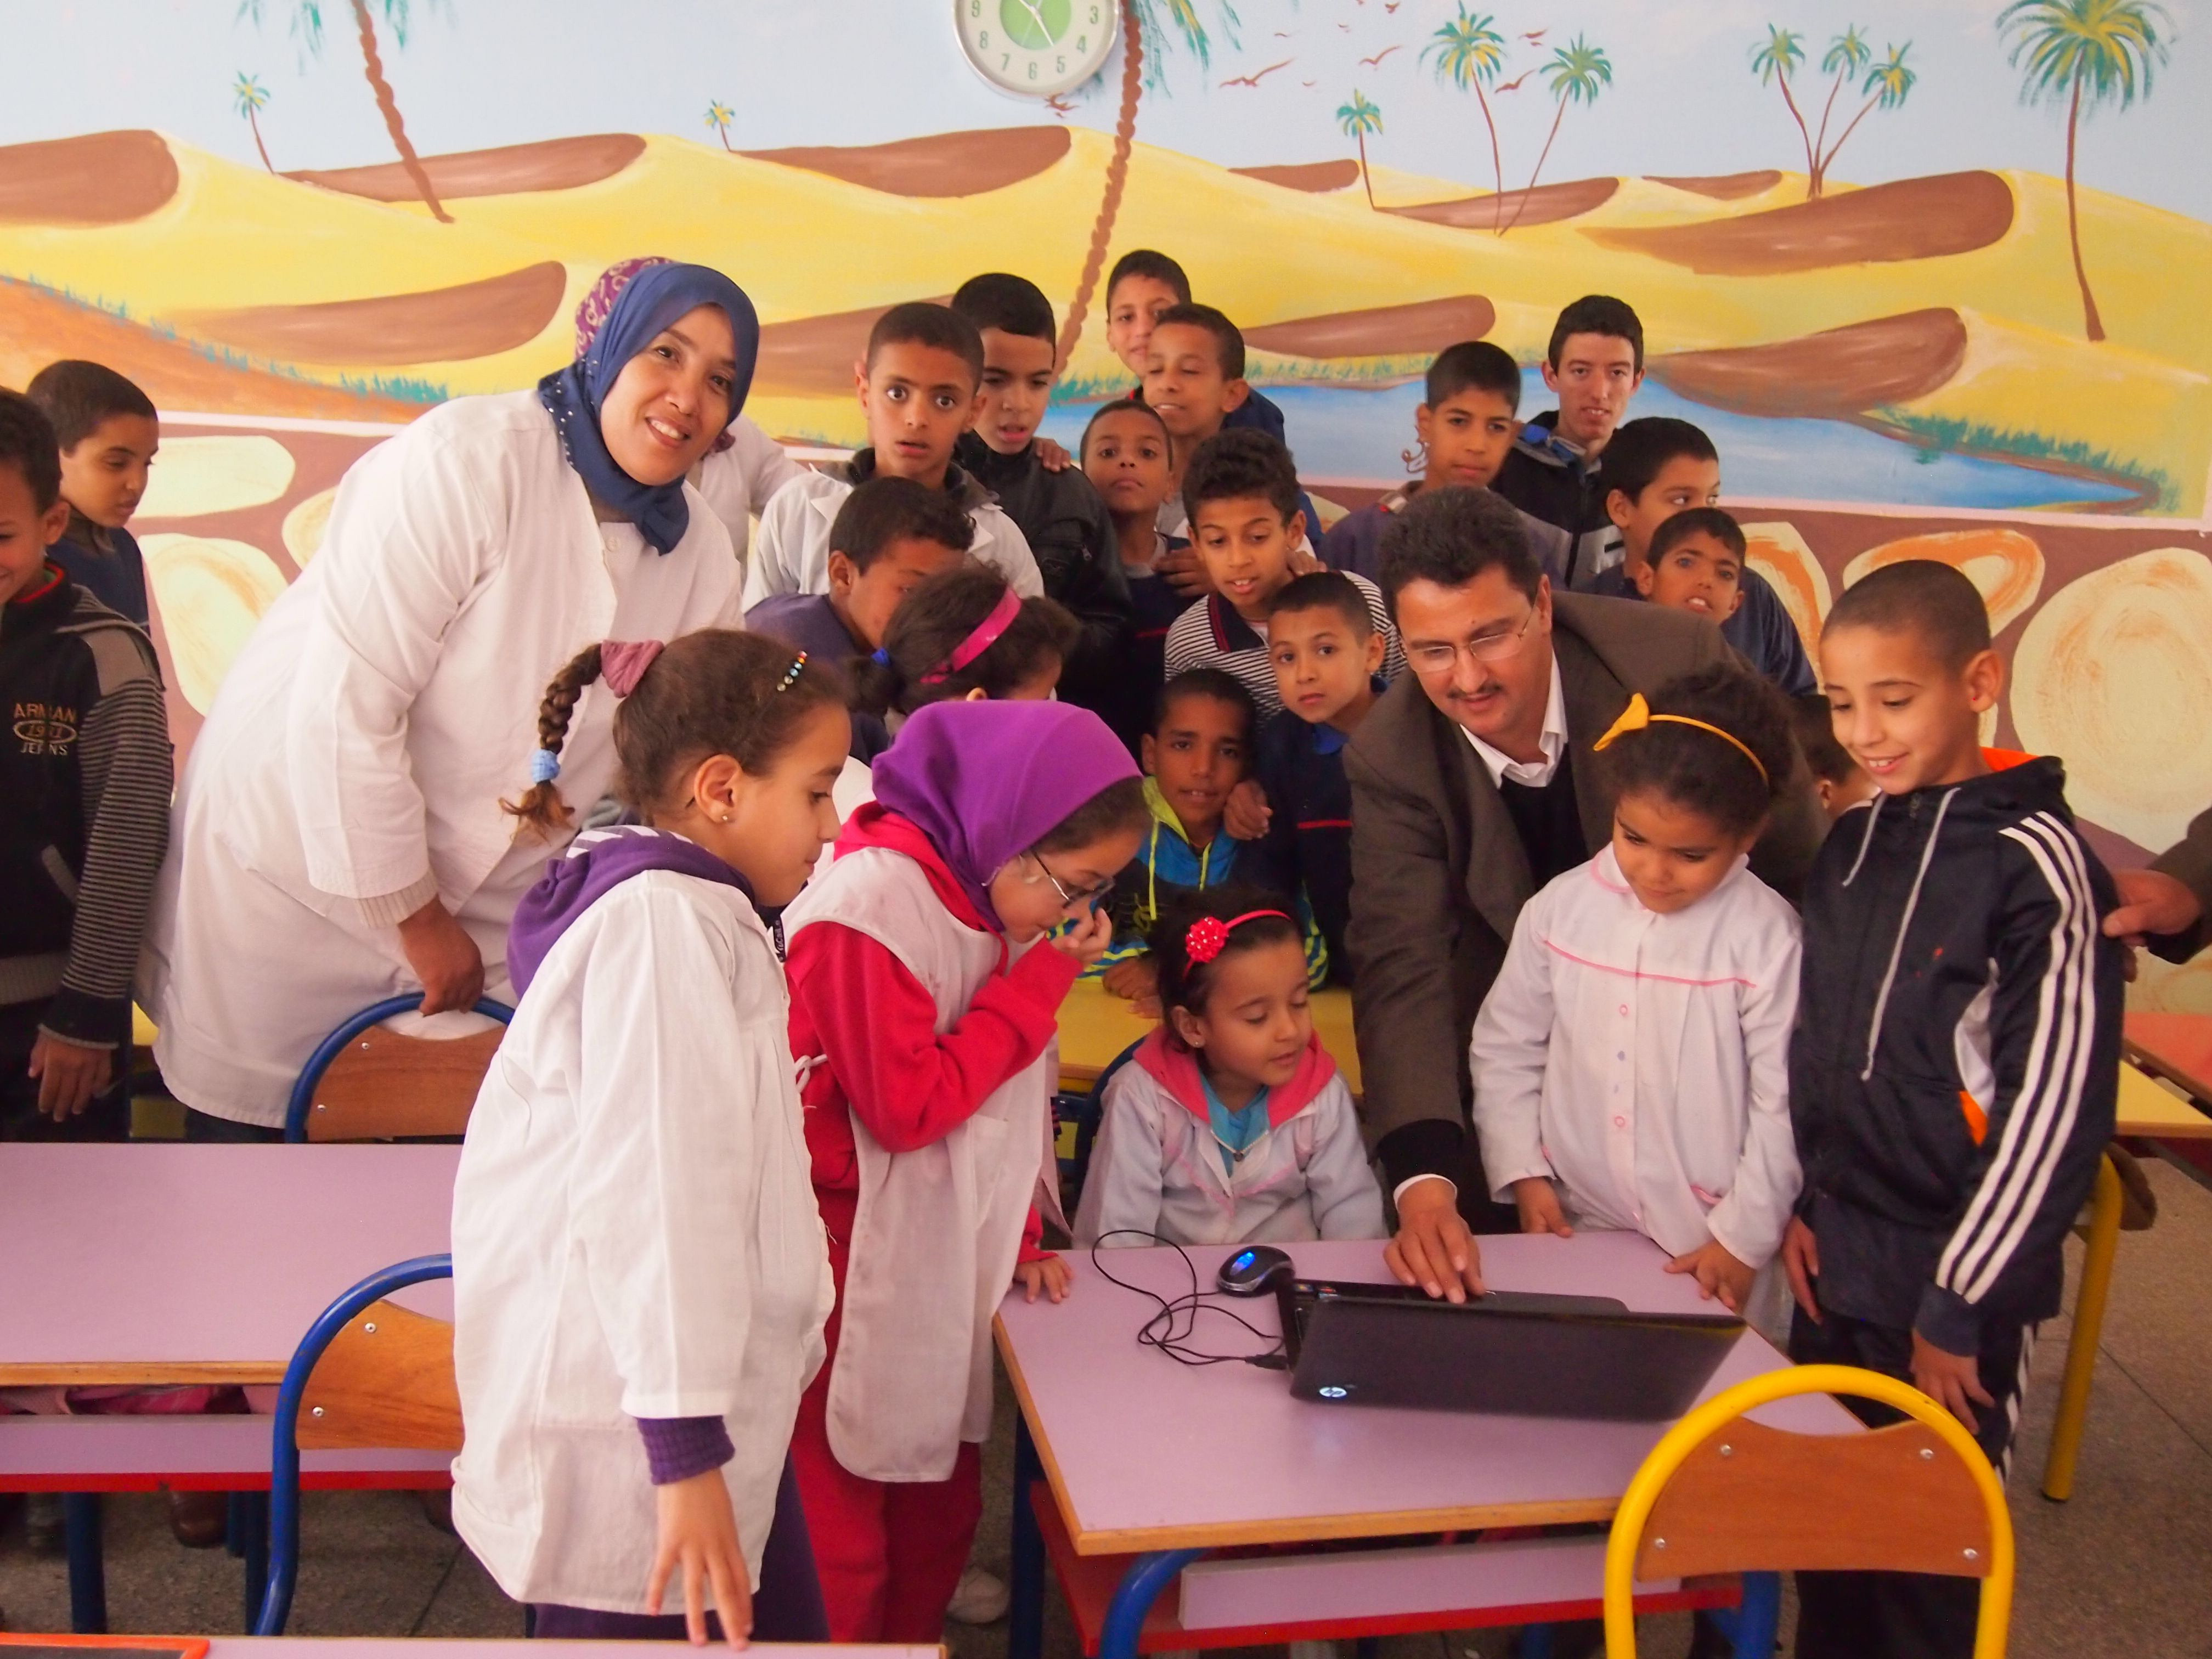 3-106_Abdelhadi Soudi shows students how to use the translation software